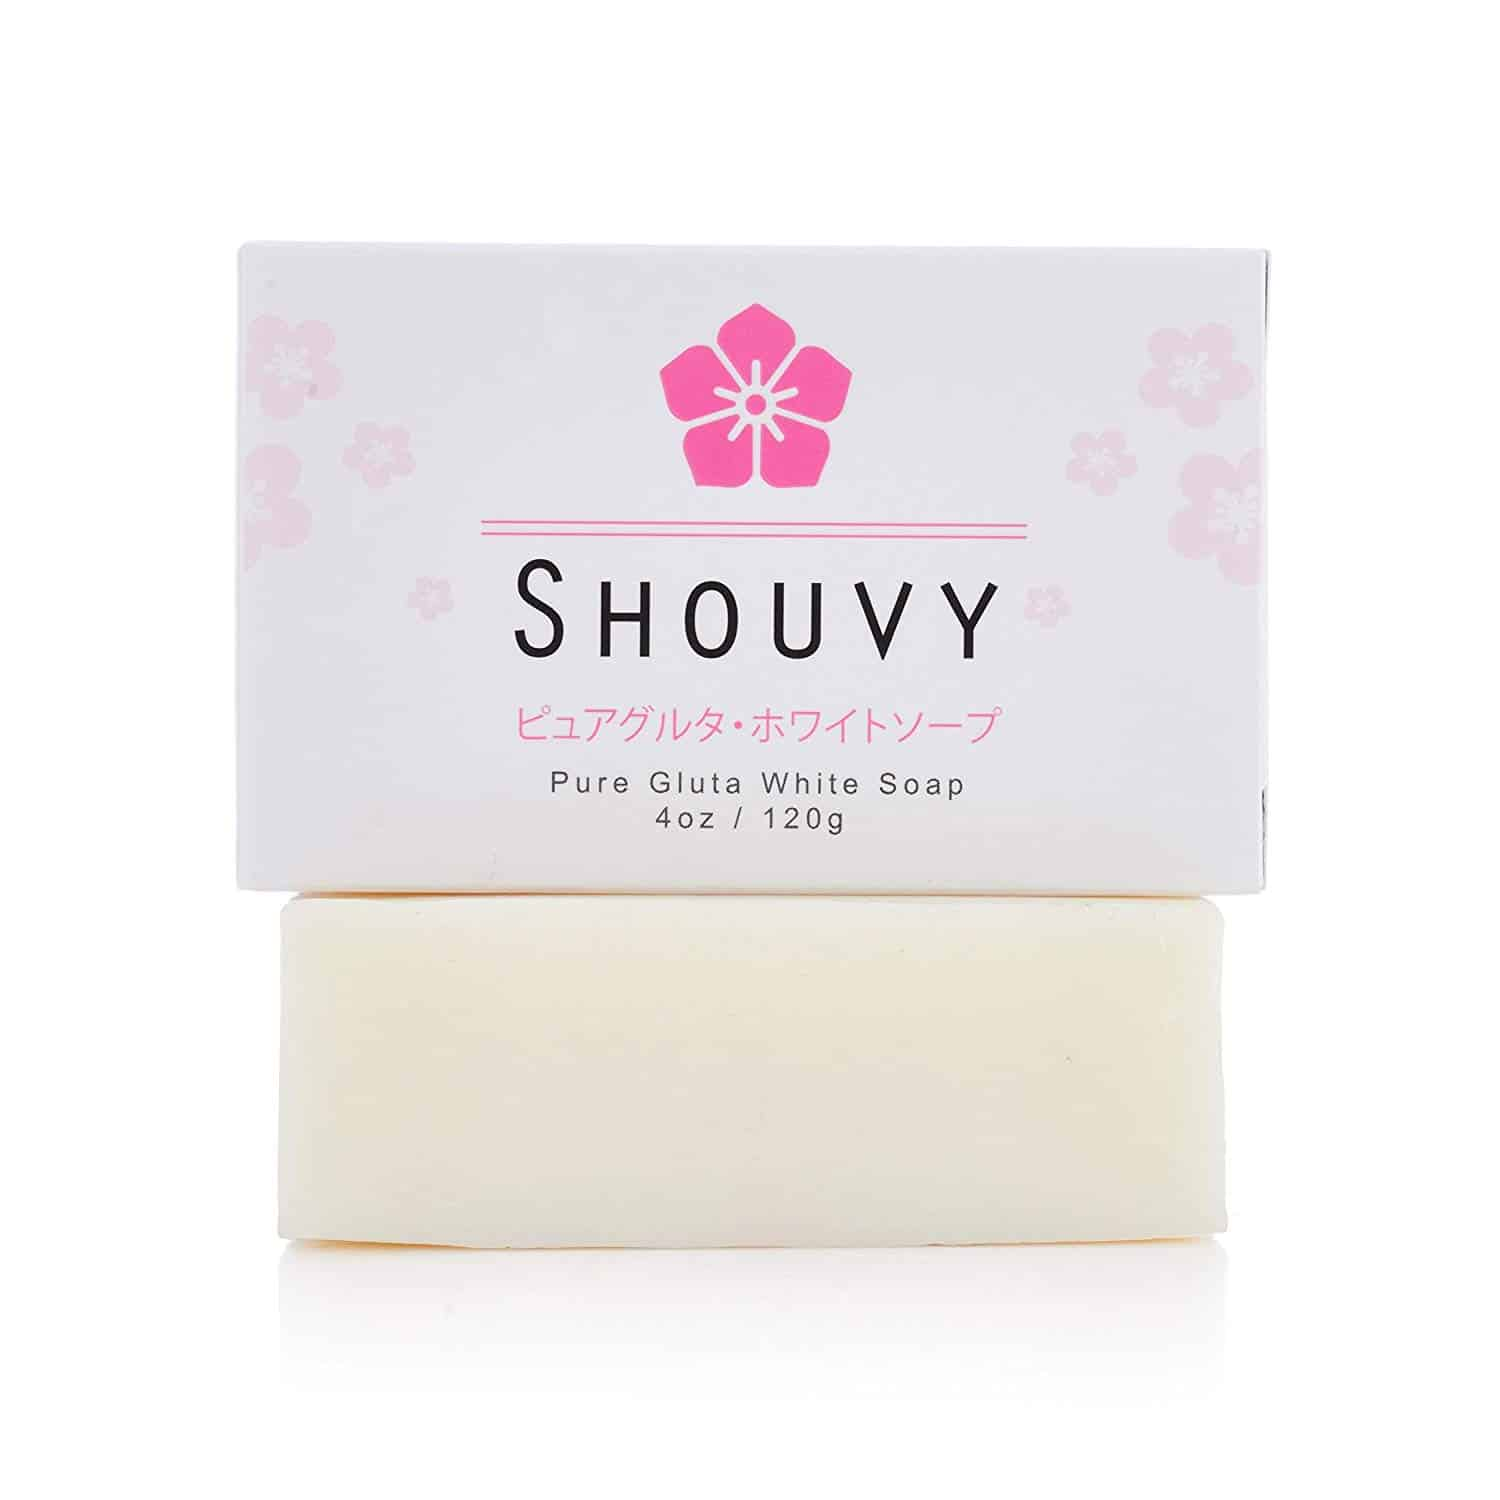 Shouvy Whitening Soap